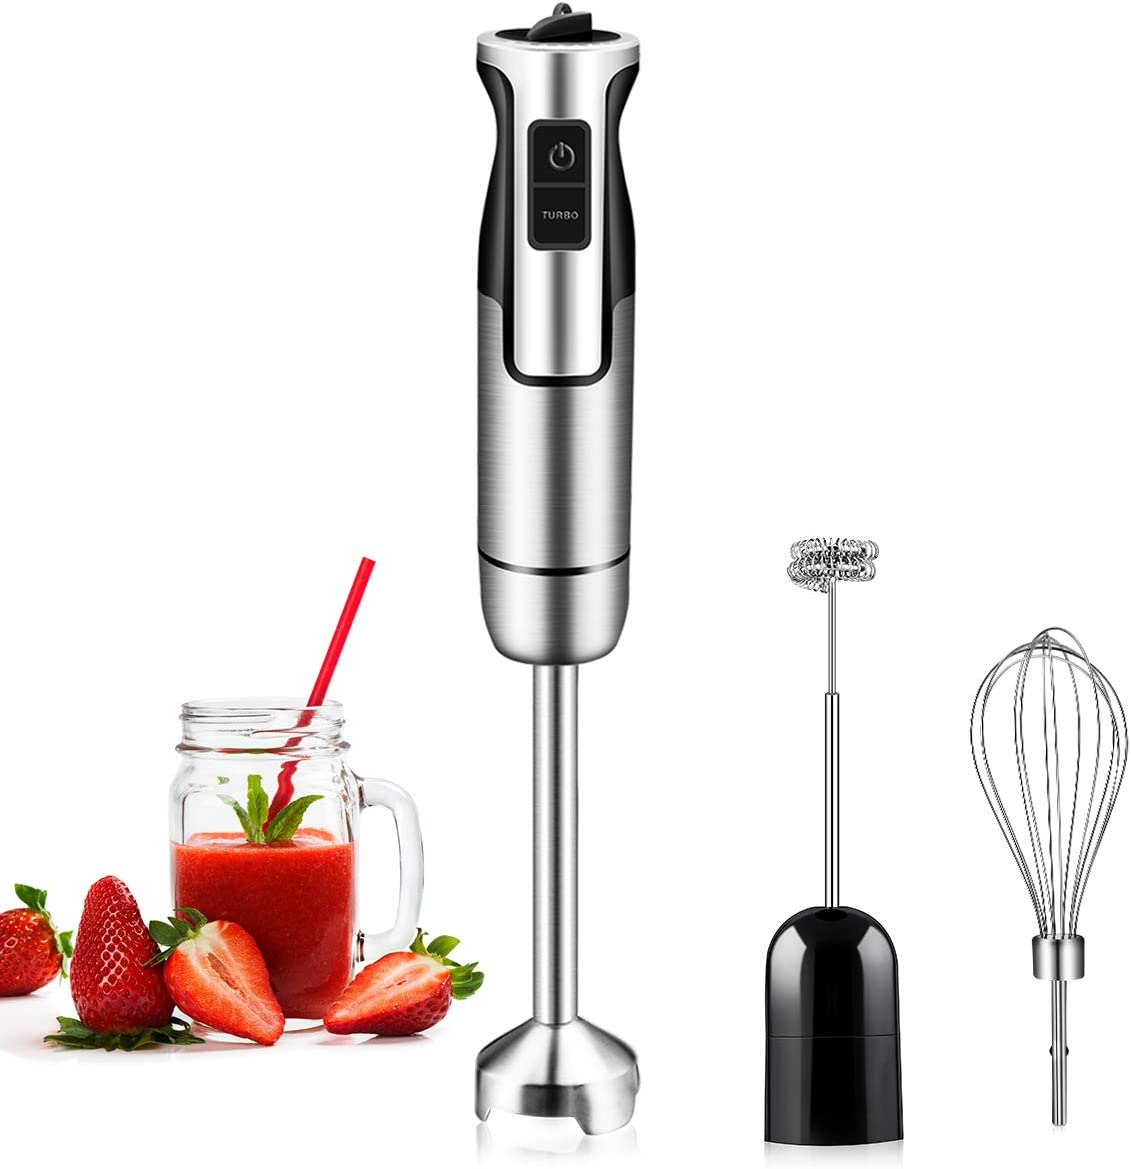 REDMOND Immersion Hand Blender, 3-in-1 8-Speed Stick Blender with Milk Frother, Egg Whisk for Smoothies, Coffee Milk Foam, Puree Baby Food, Sauces and Soups, HB004